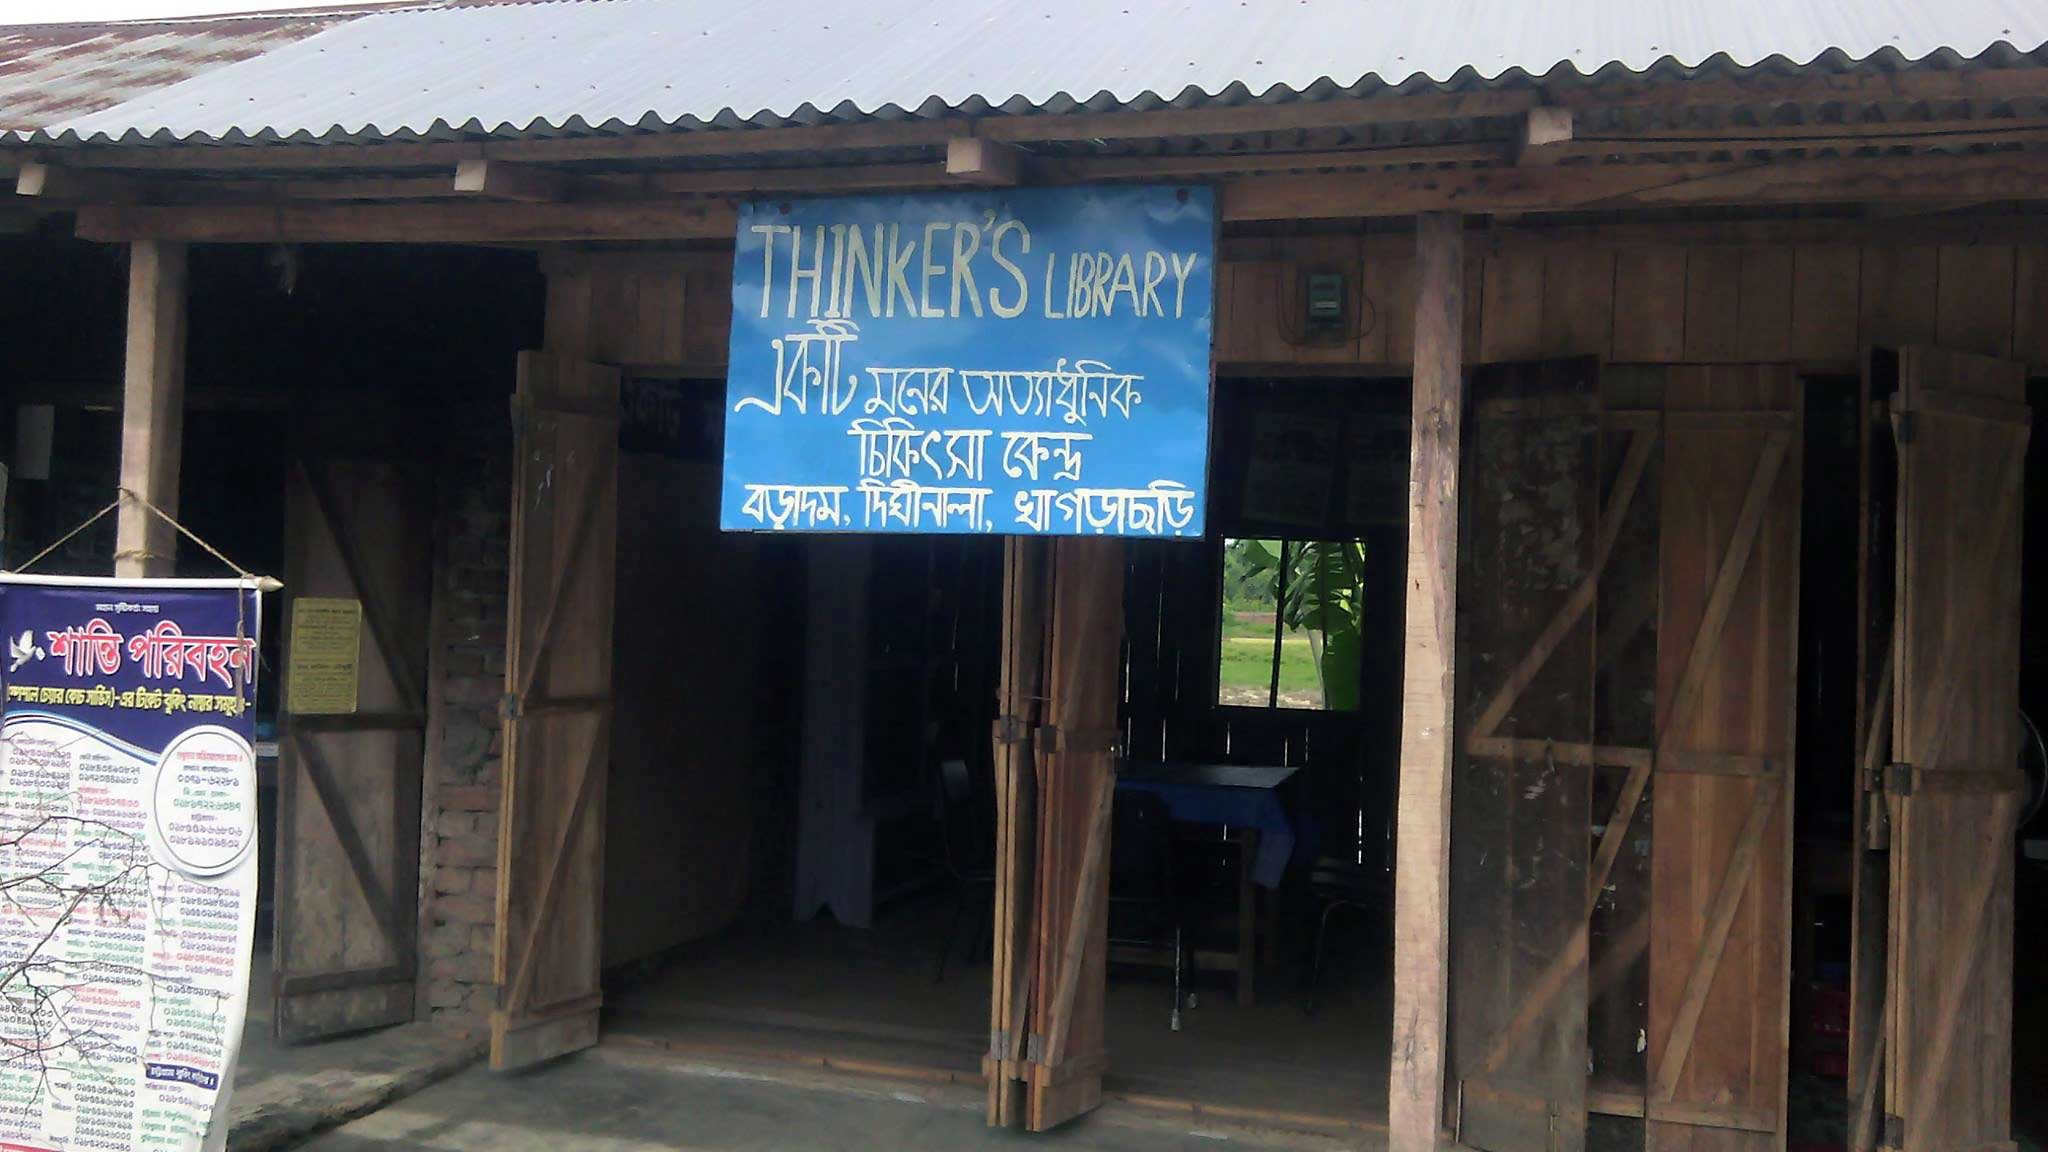 Office of Thinker's Library